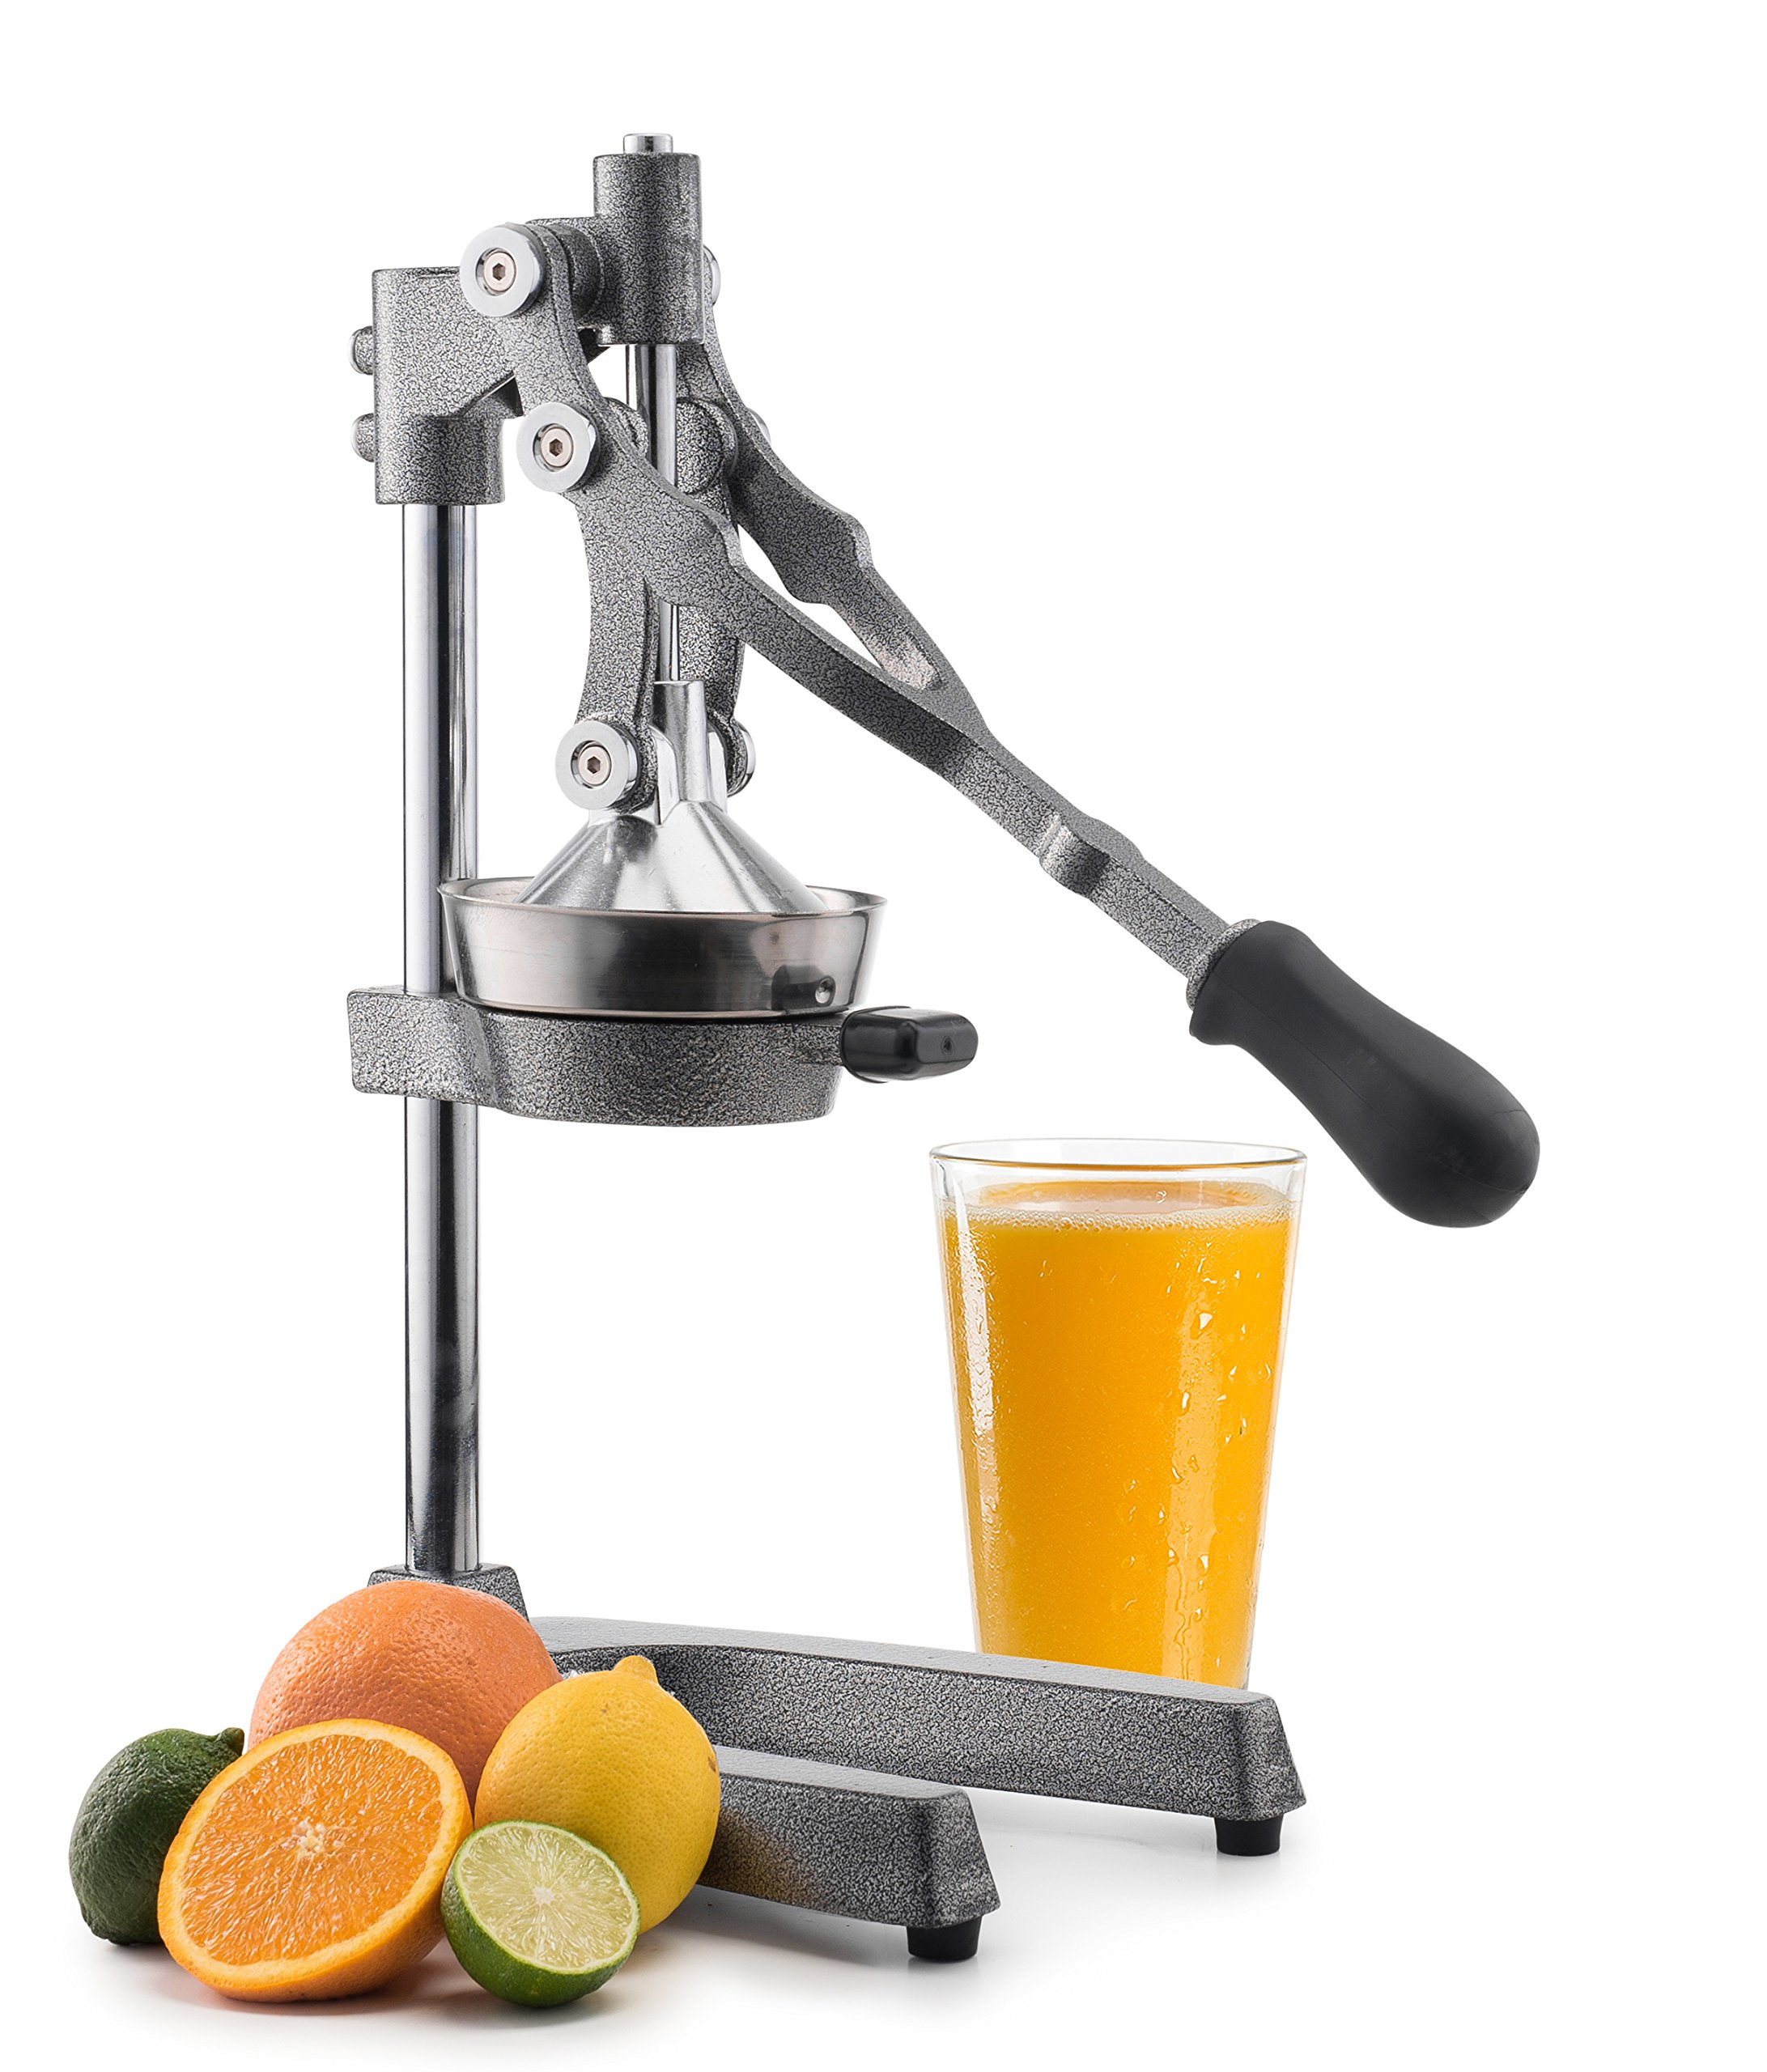 Manual Fruit Juicer - Commercial Grade Home Citrus Lever Squeezer for Oranges, Lemons, Limes, Grapefruits and More - Stainless Steel and Cast Iron - Large - by Vollum